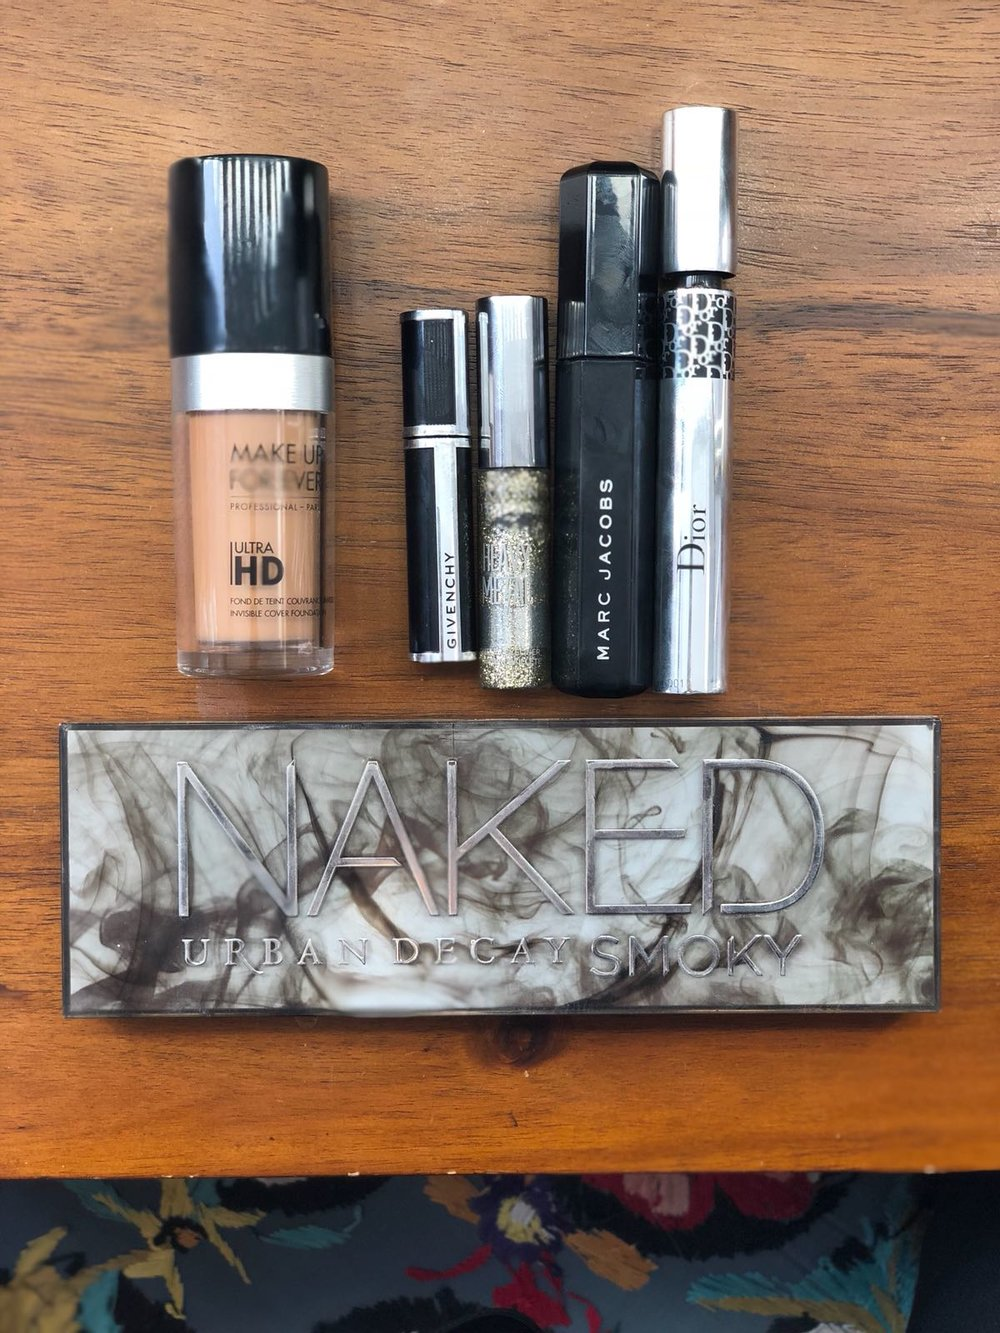 Make up Forever Foundation, Mascara from Givenchy, Marc Jacobs, Dior; Naked Smoky Pallete Urban Decay,